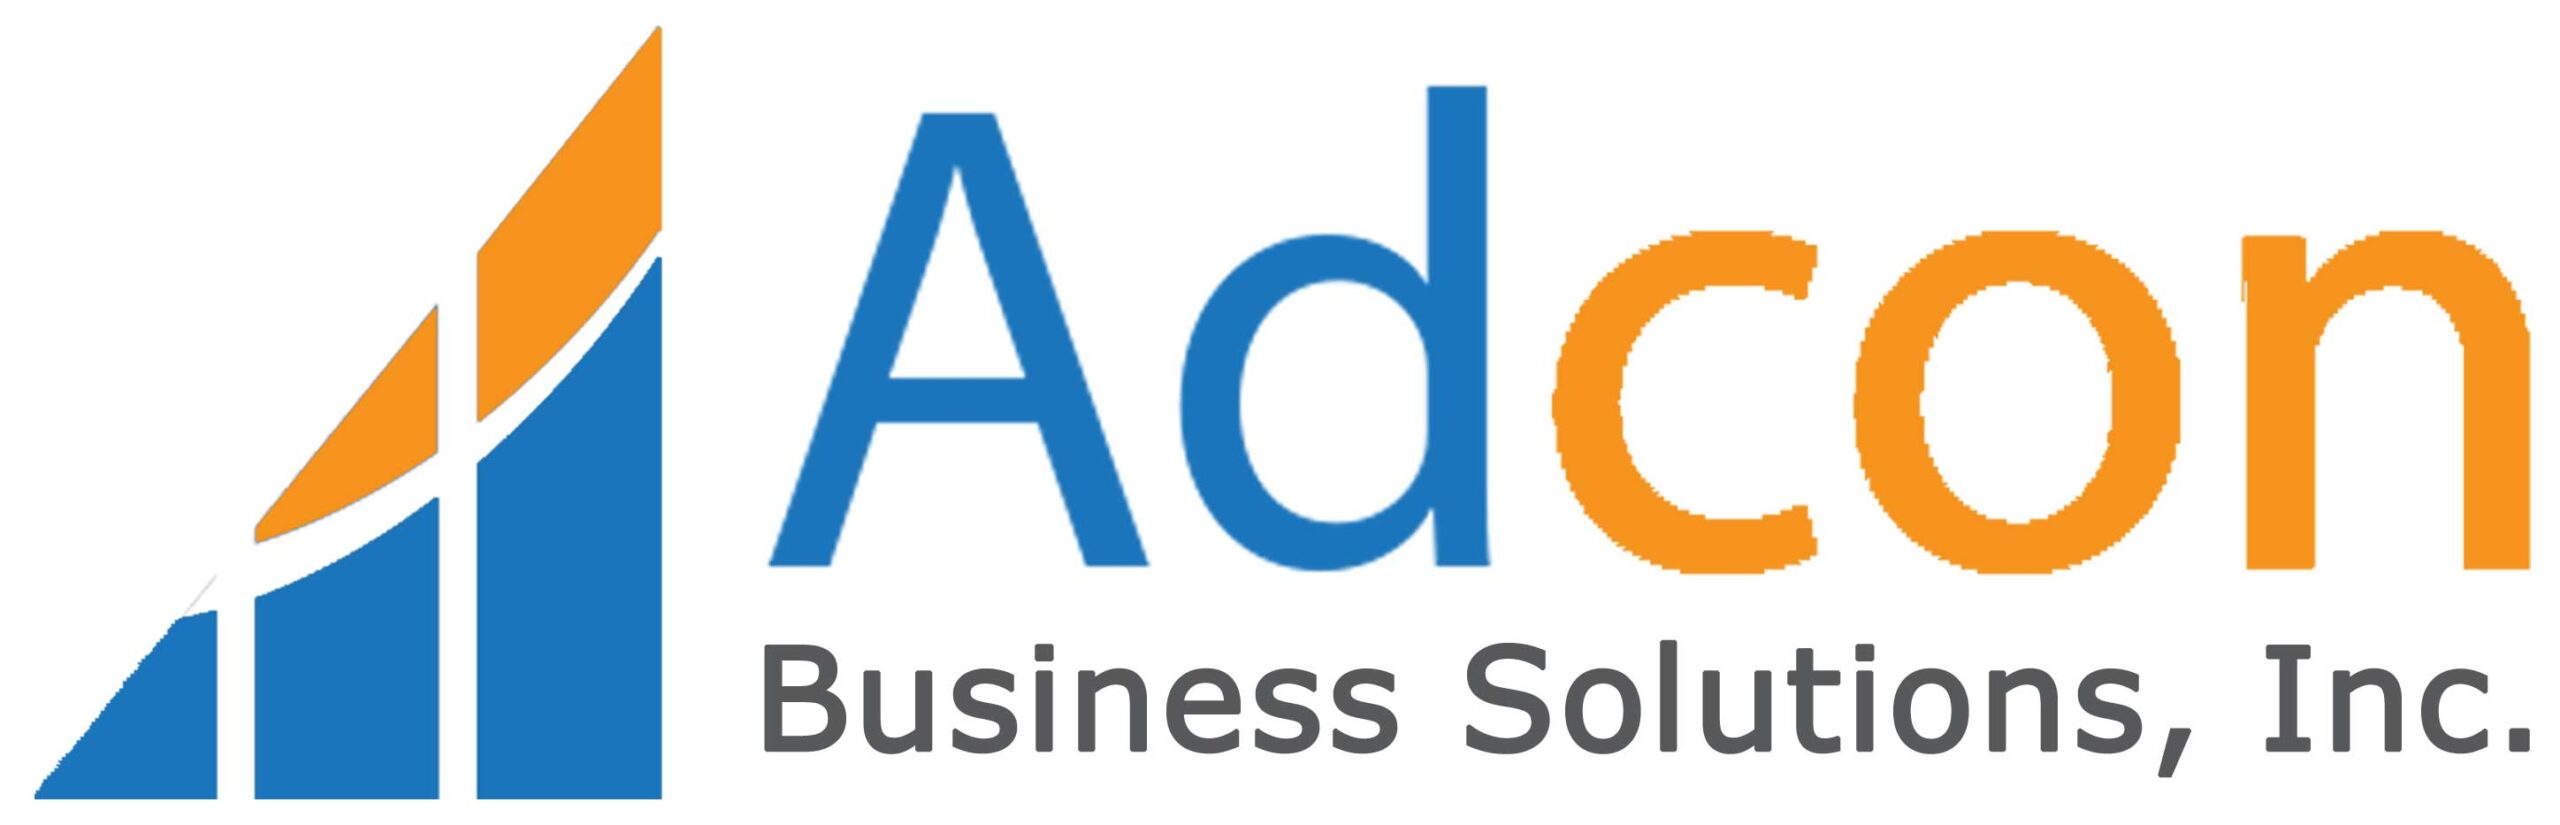 Orange and blue logo for Adcon Business Solutions